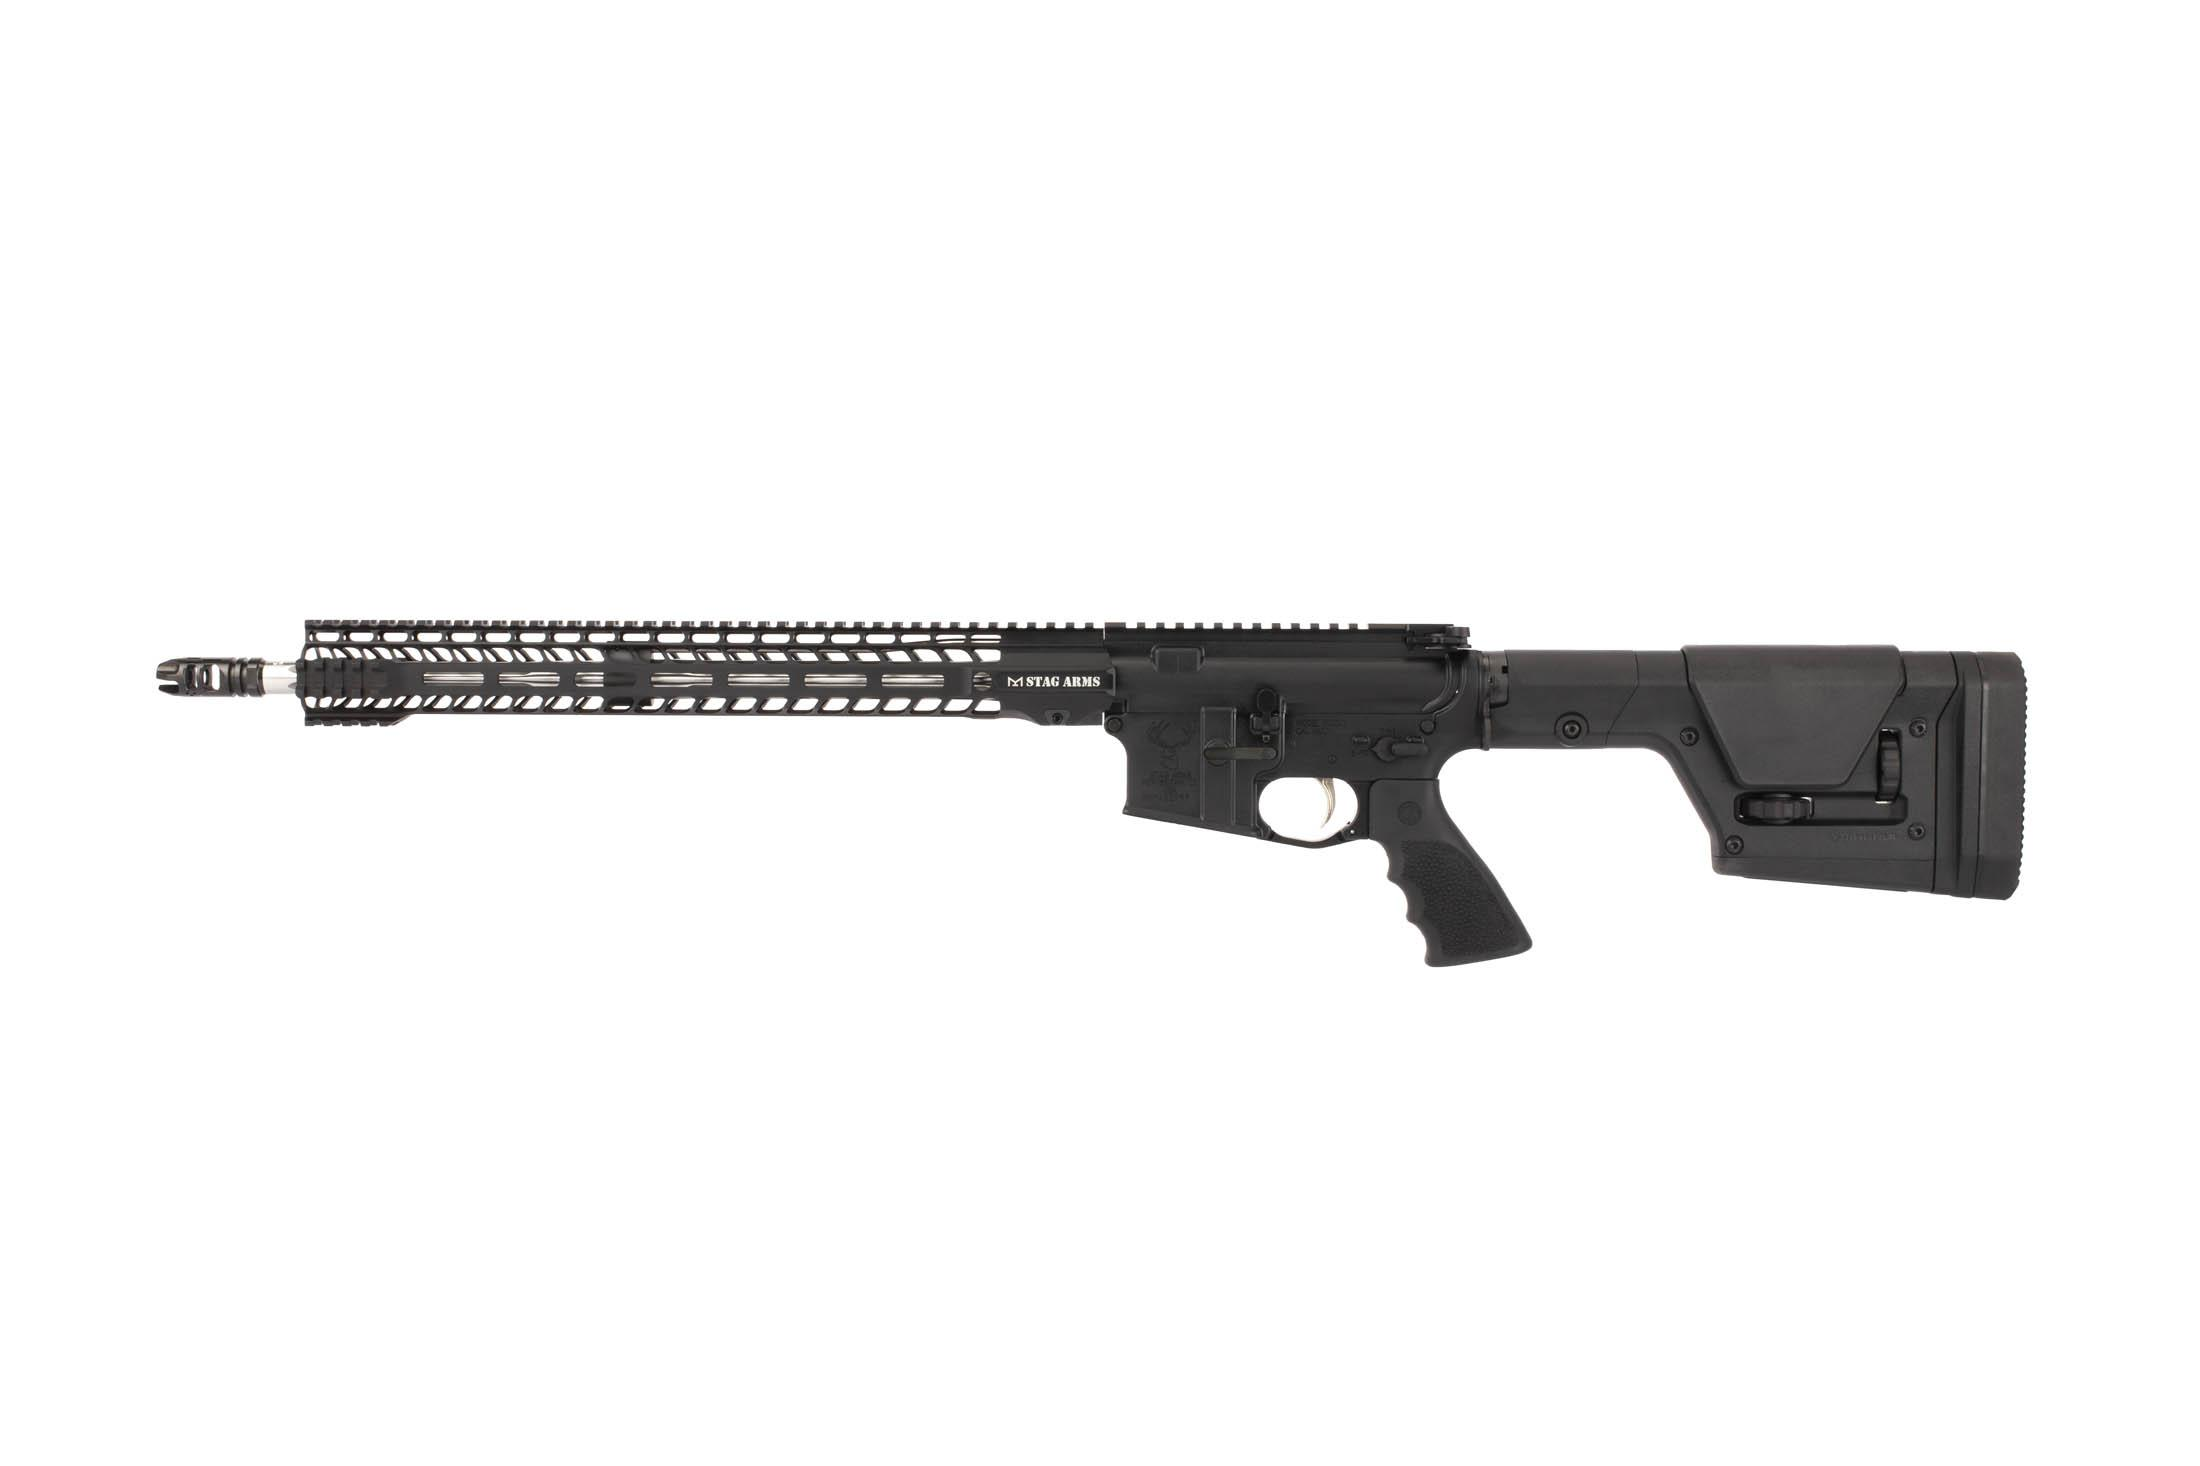 Stag Arms 18in STAG-15 in .224 Valkyrie has a lightweight 16.5in M-LOK handguard